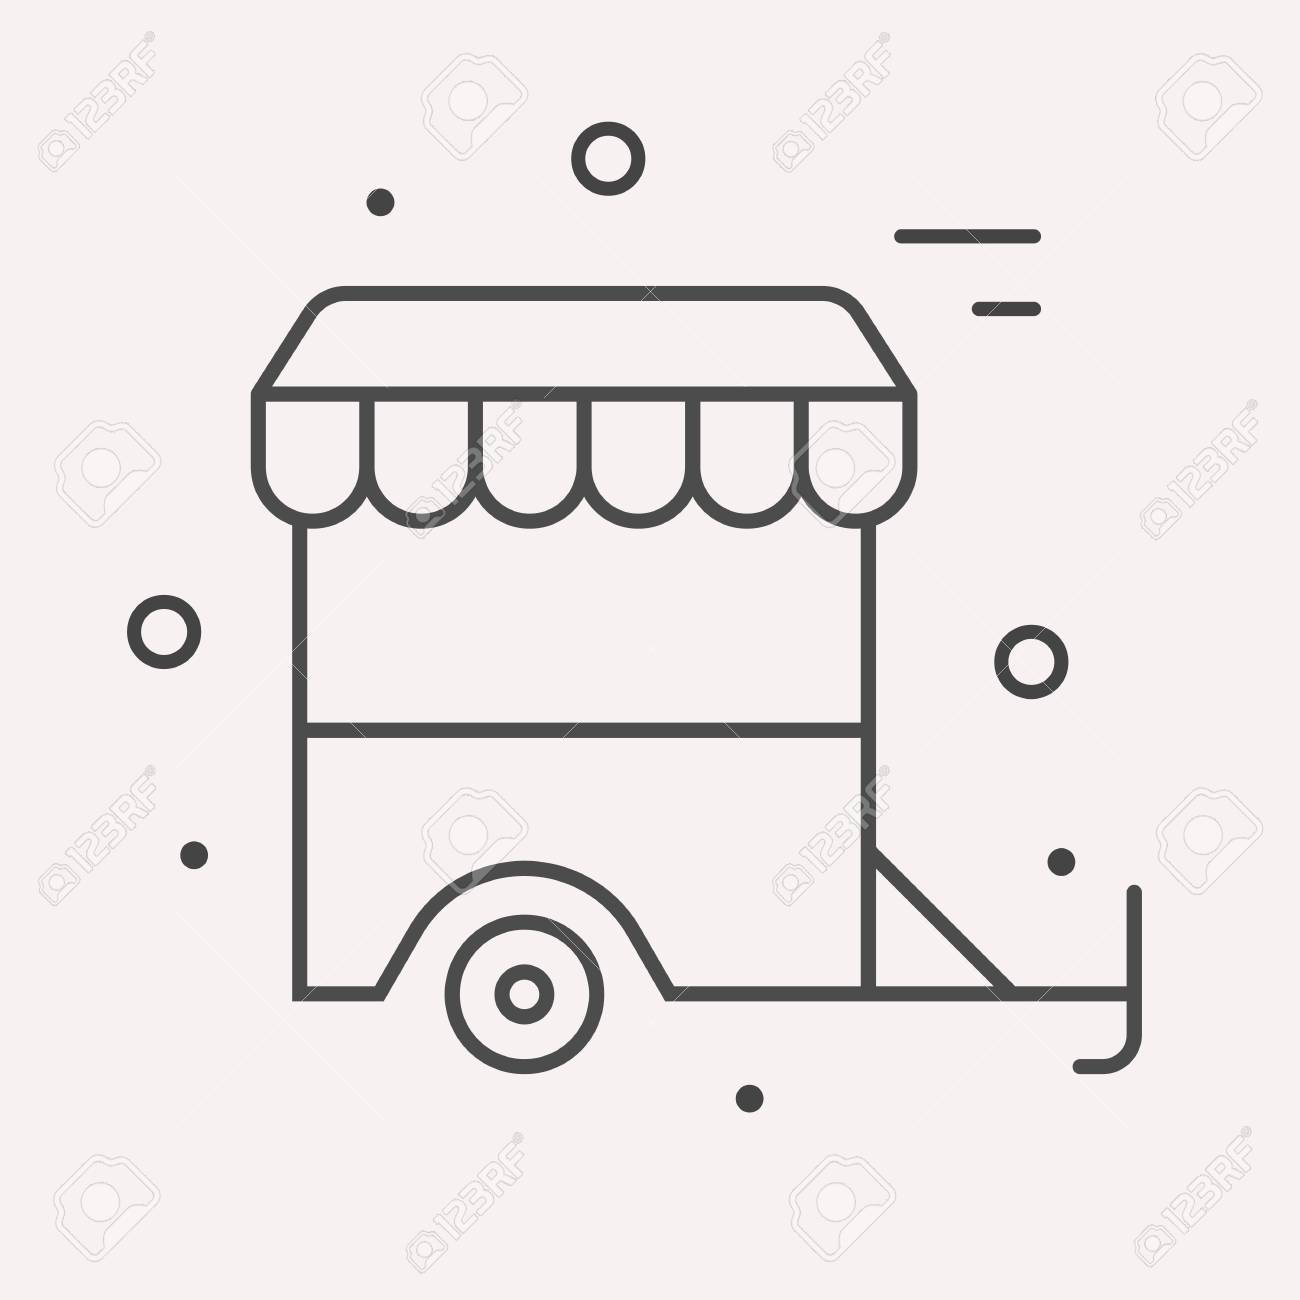 Logo Or Label Meal Line Style Logotype Template With Junk Food